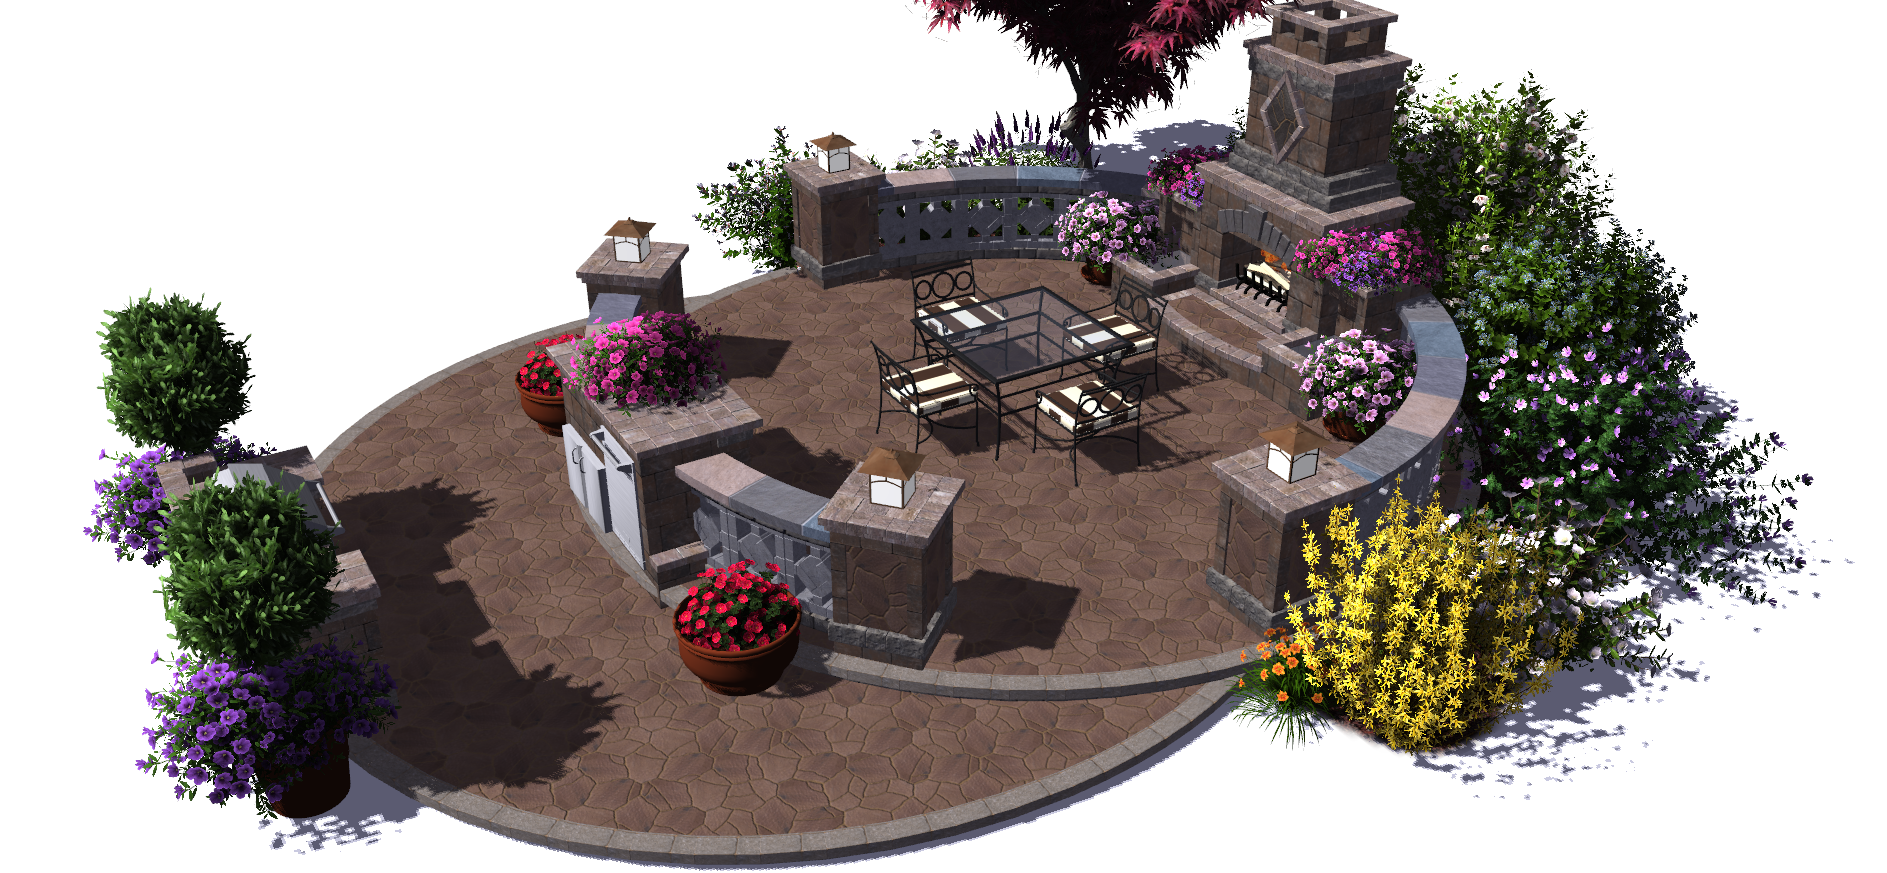 Visionscape interactive llc transforms landscape design for 3d garden design